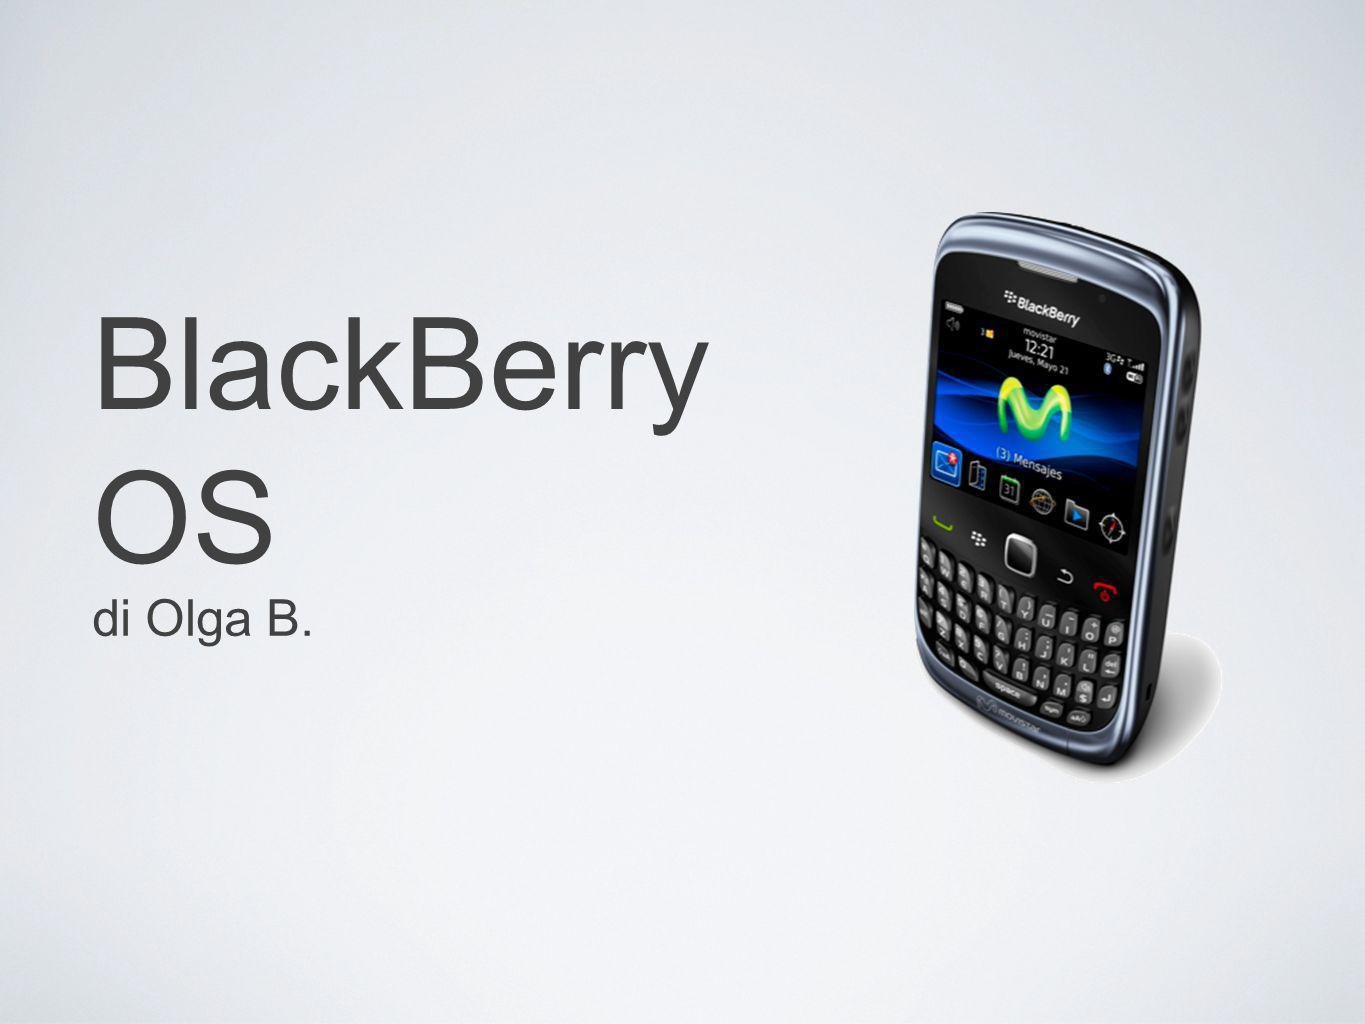 BlackBerry OS di Olga B.